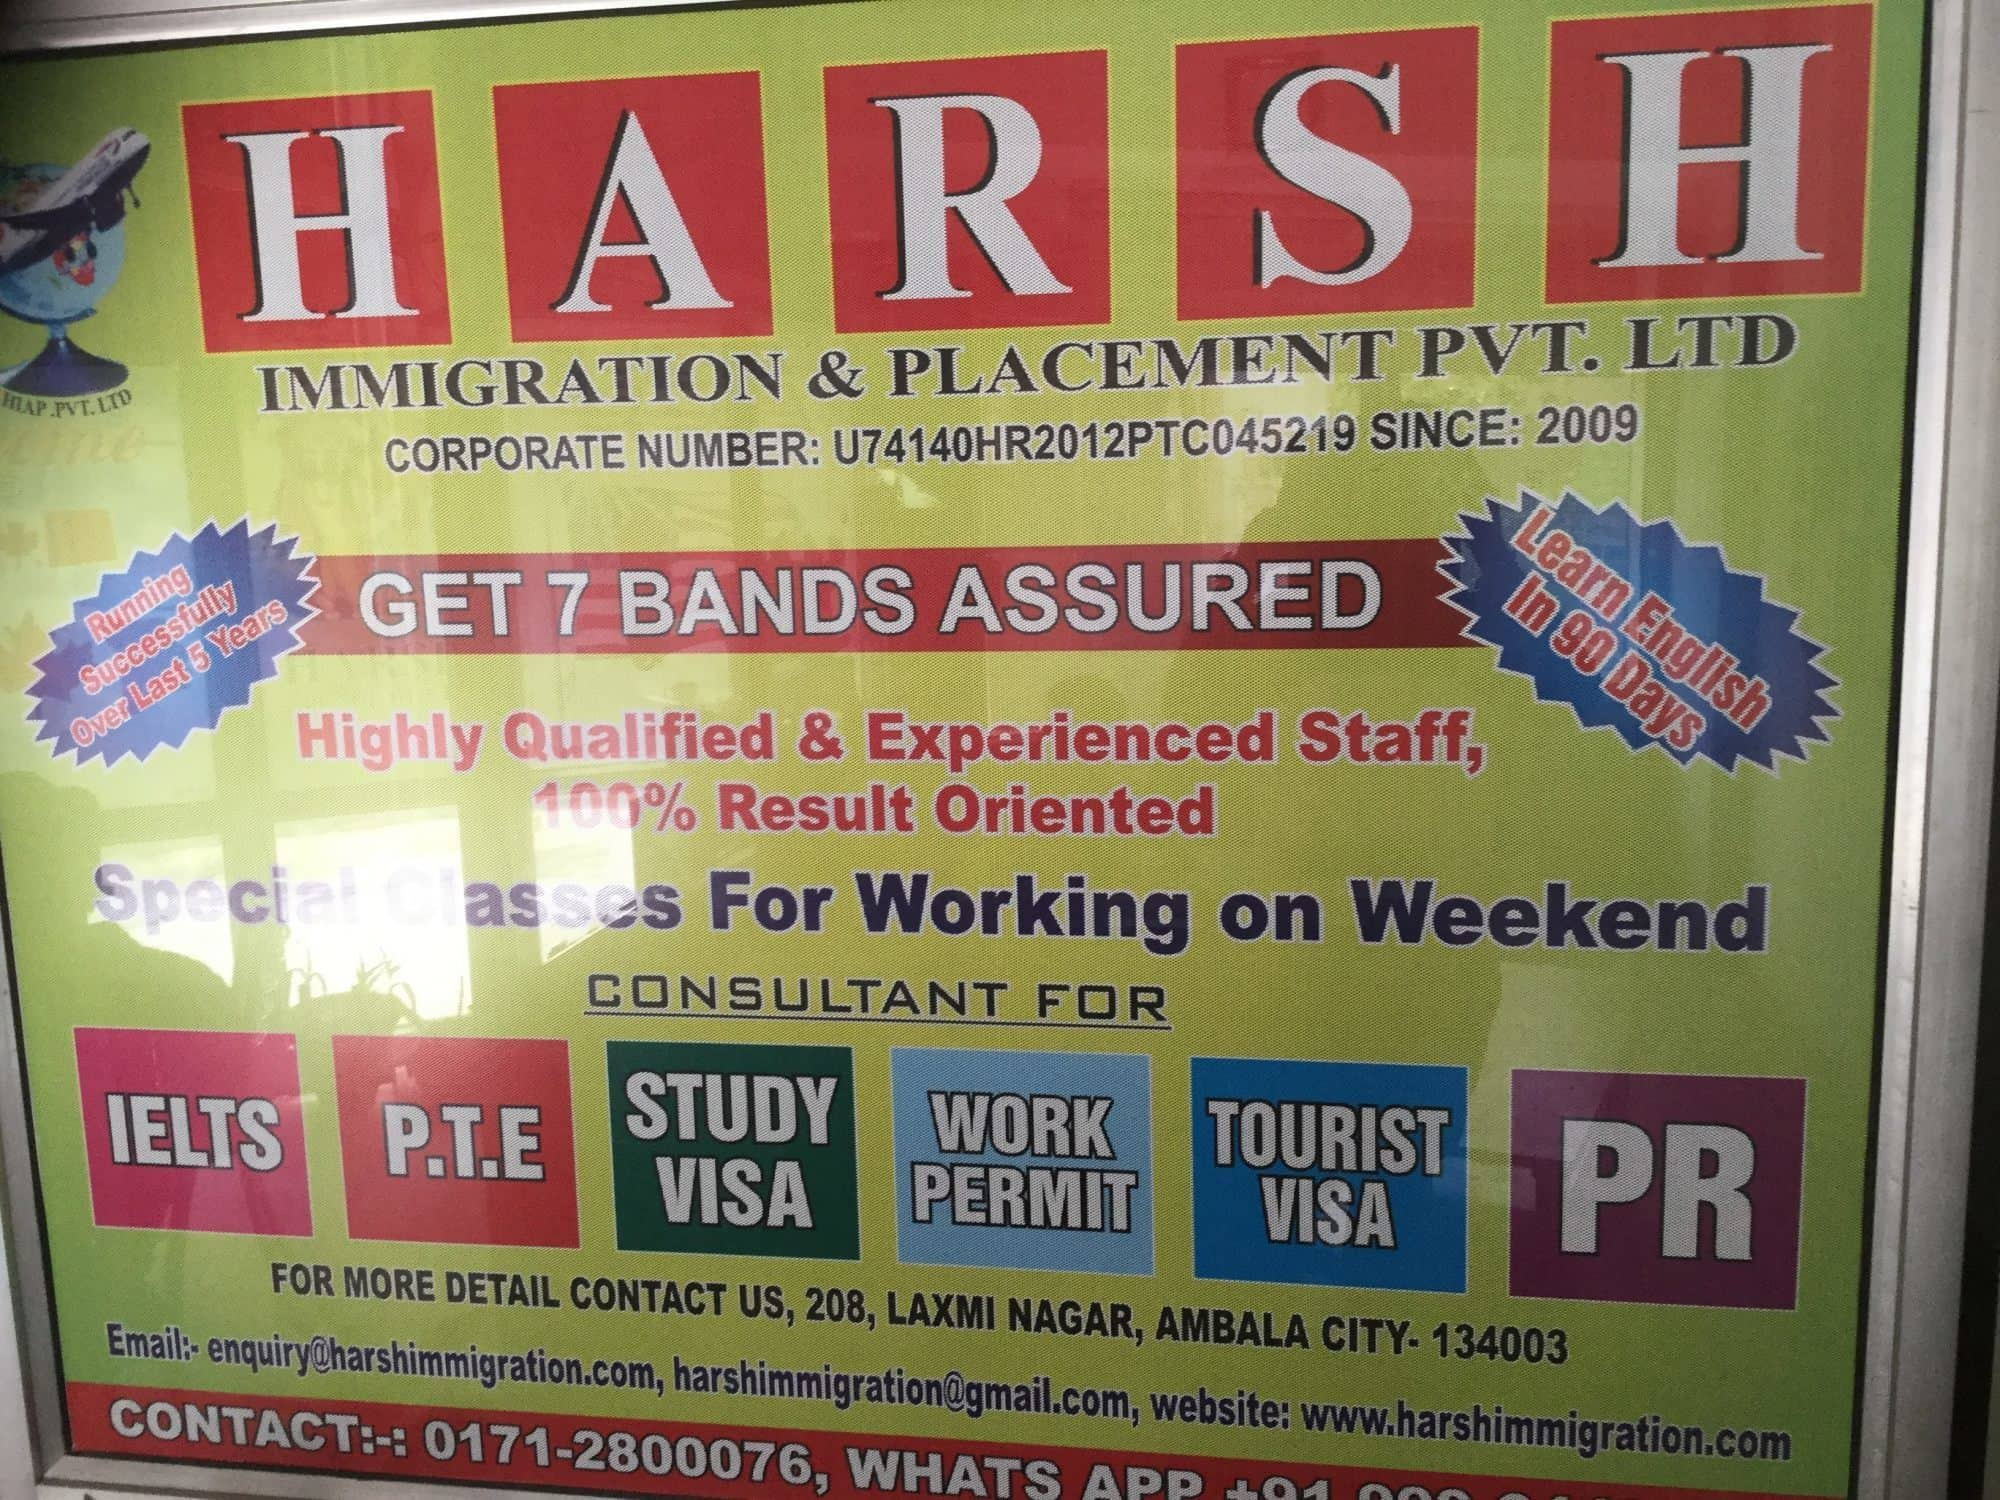 Harsh immigration placement PVT Ltd Photos, Ambala City, Ambala